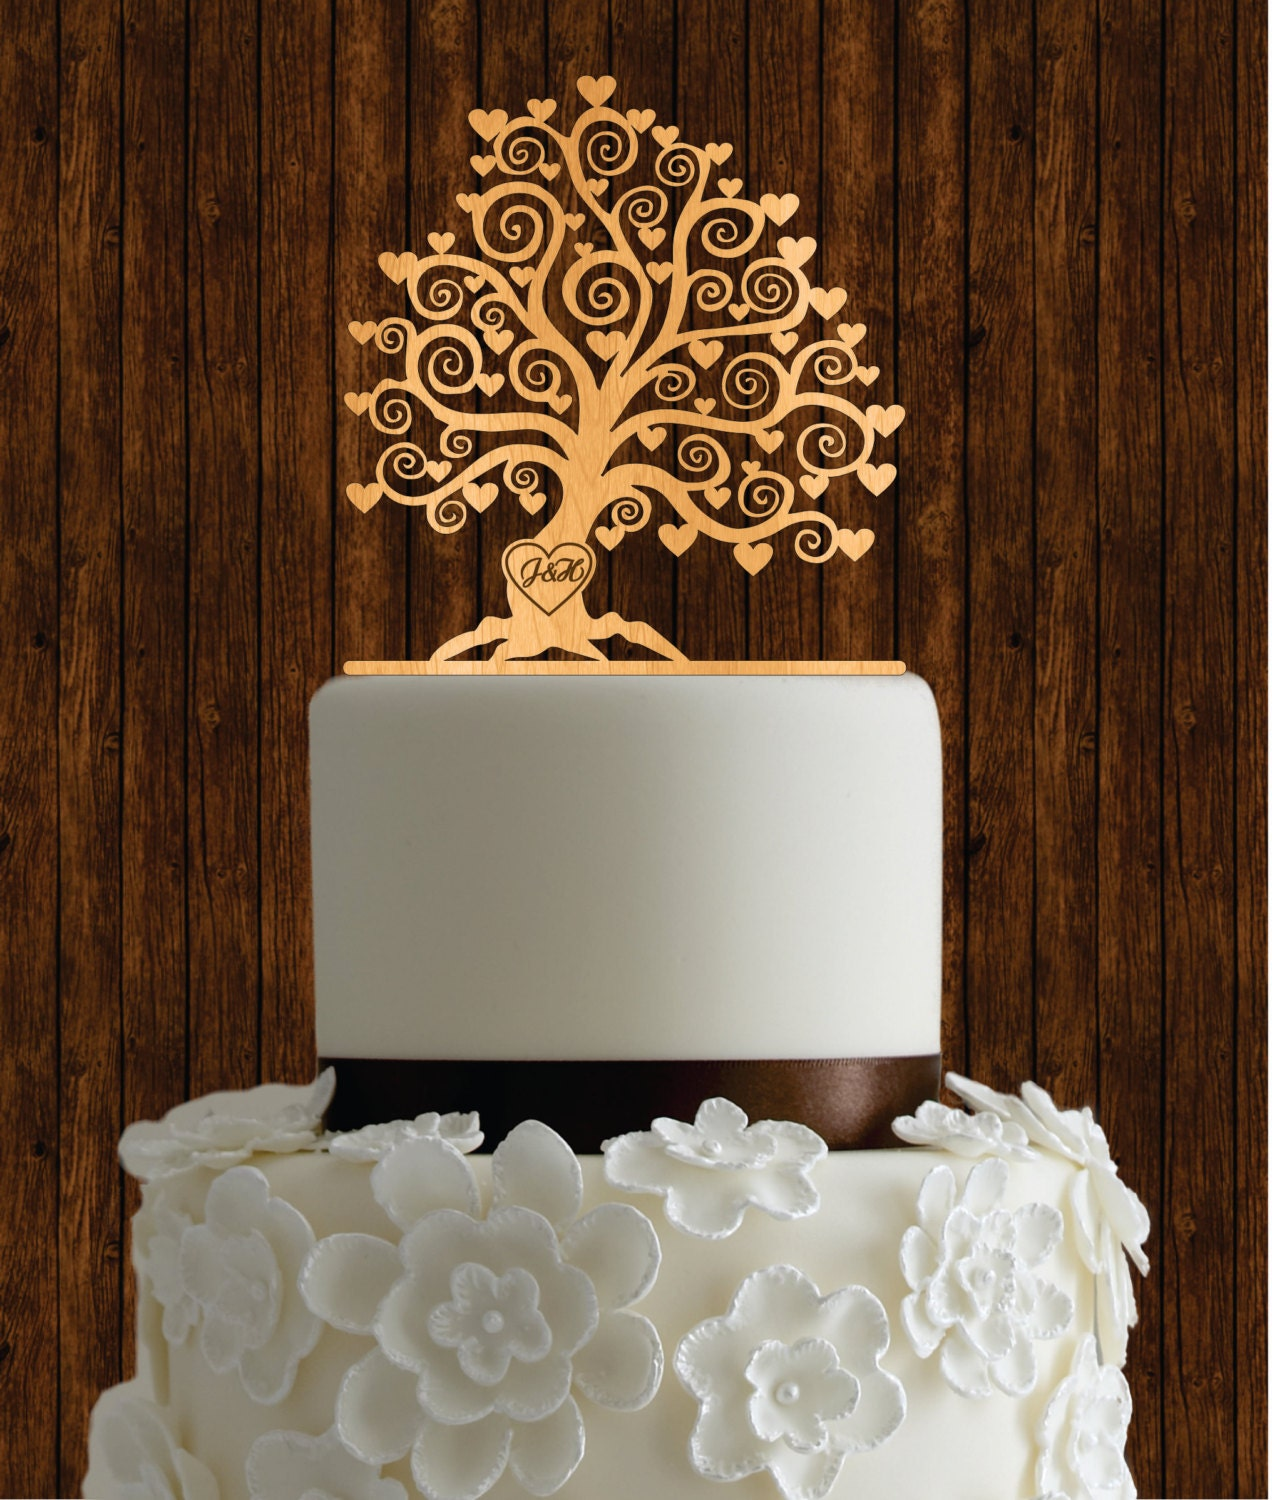 Make Your Own Wedding Topper: Cherry Wood Cake Topper / Tree Cake Topper / Rustic Cake